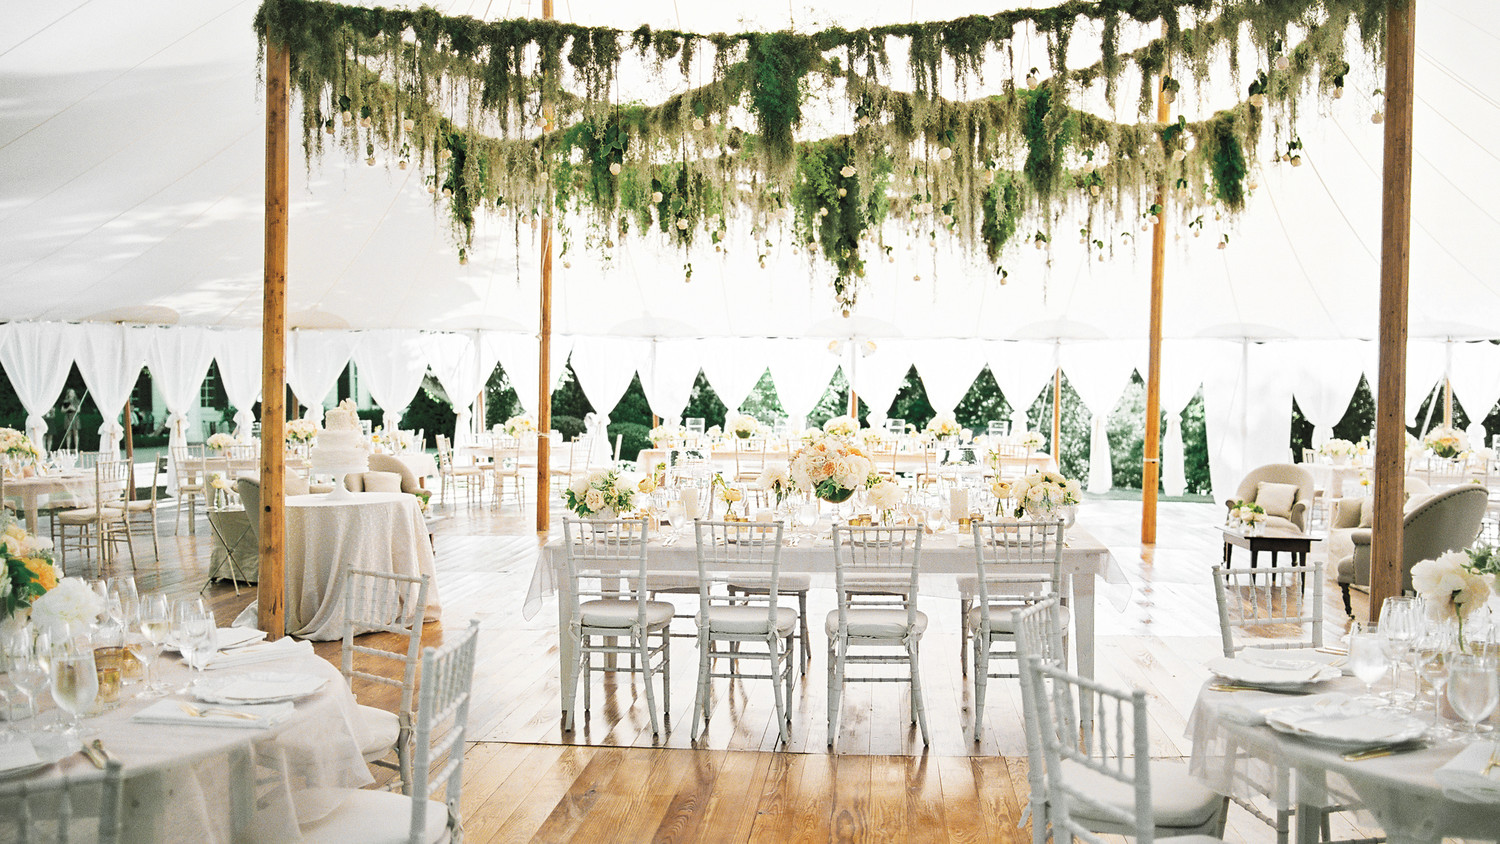 28 tent decorating ideas that will upgrade your wedding reception 28 tent decorating ideas that will upgrade your wedding reception martha stewart weddings junglespirit